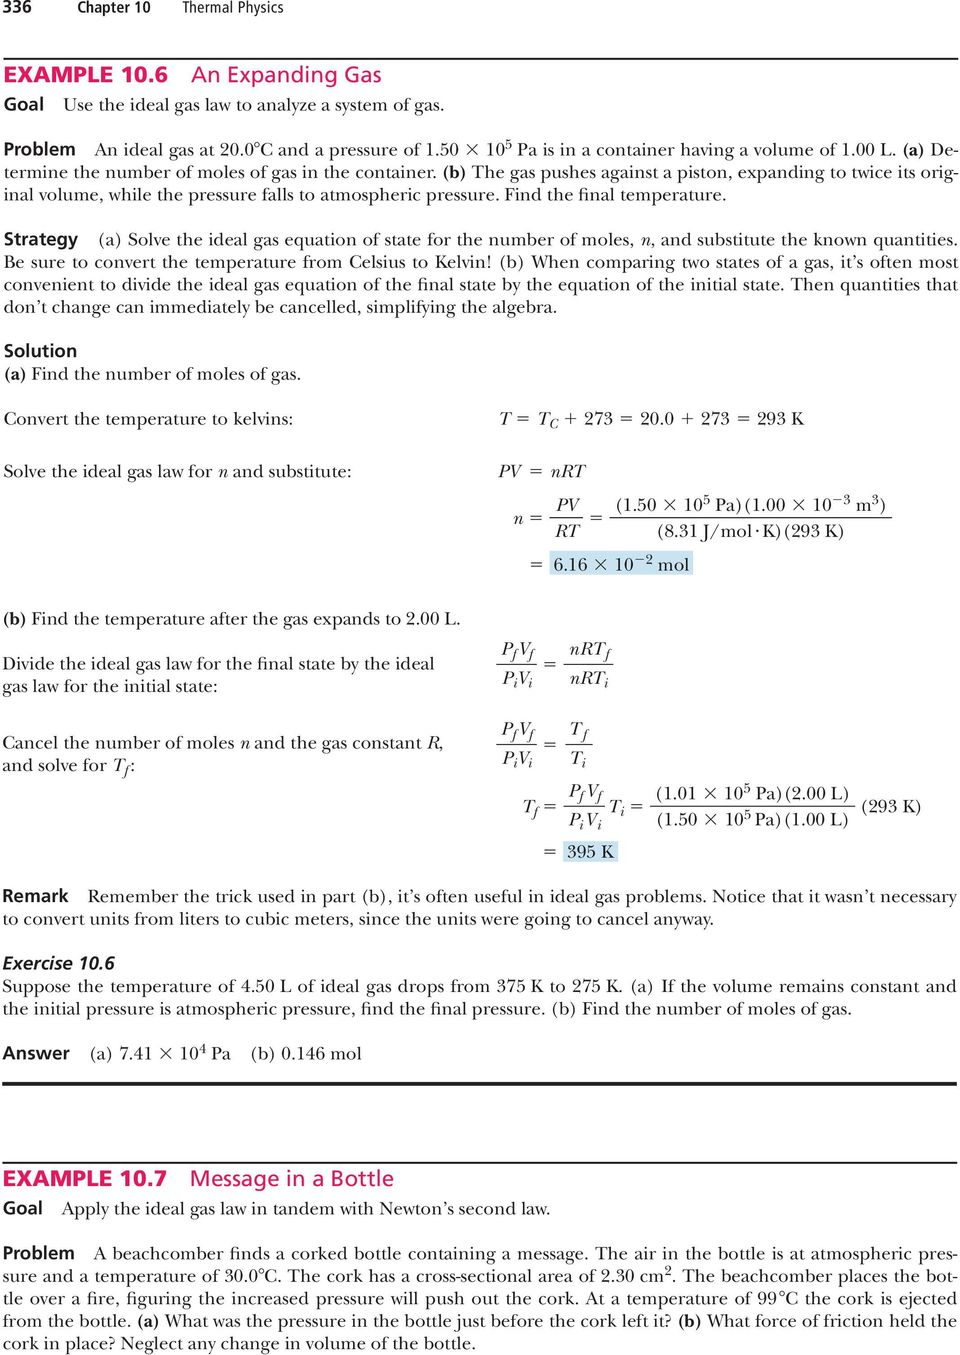 Free Worksheet Ideal Gas Law Worksheet ideal gas law worksheet answer key mlrx info pv nrt answers density quotes quotesgram